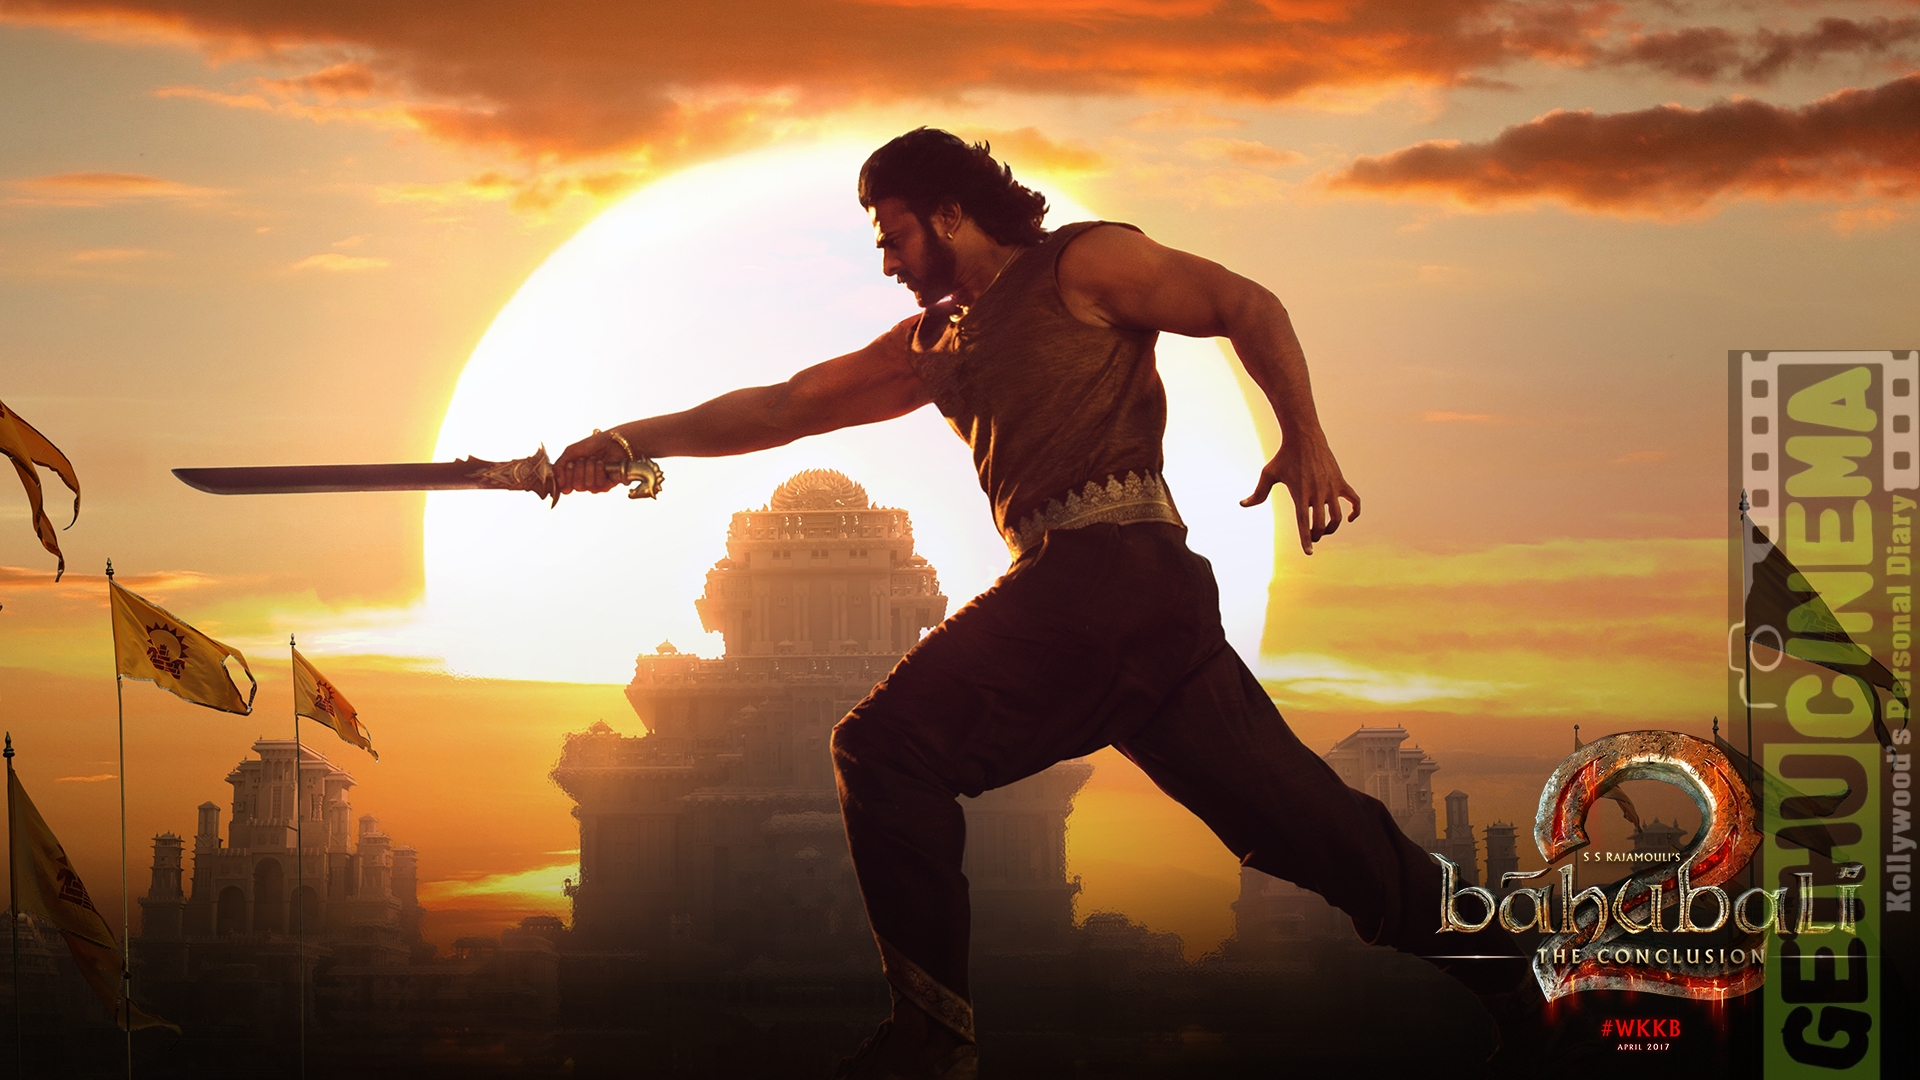 baahubali-the-conclusion-wallpaper-desktop-High Resolution - Gethucinema-1 (6)